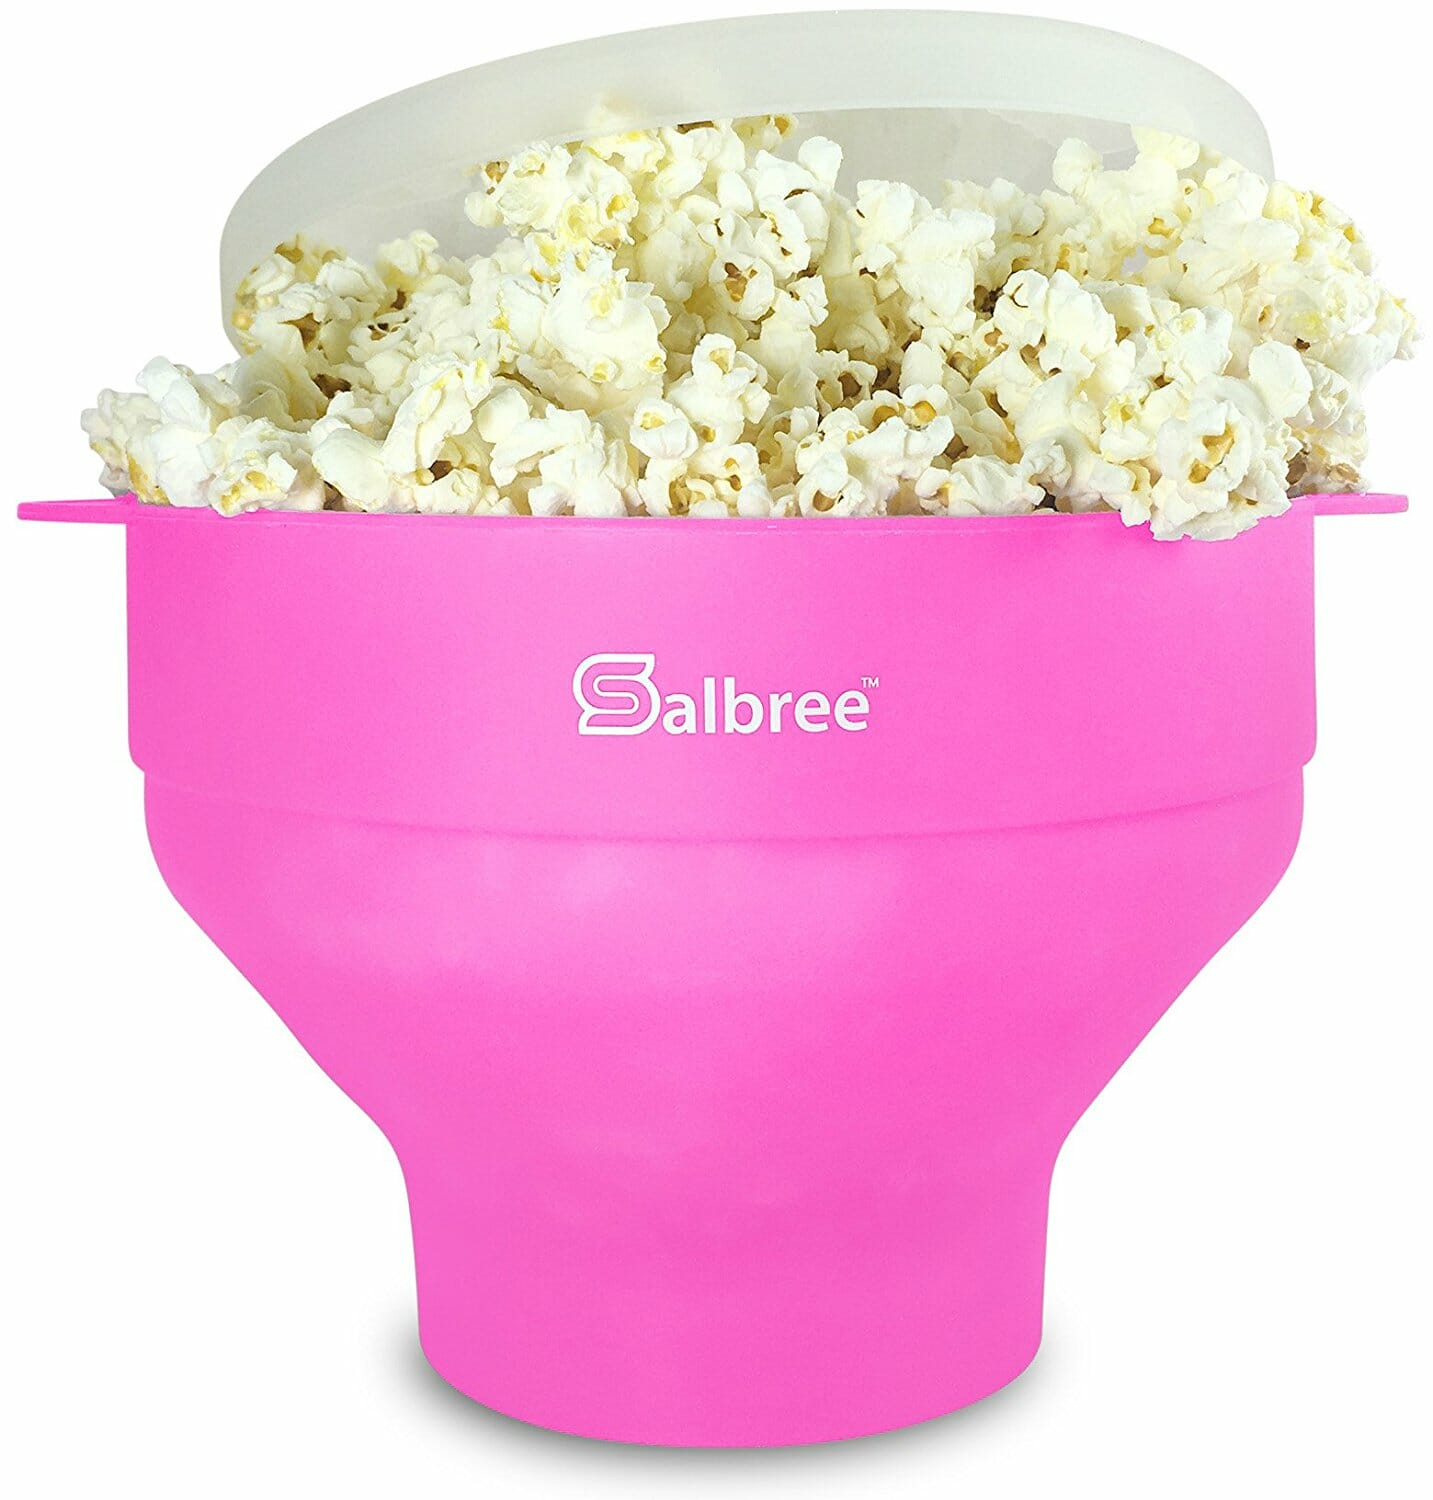 graduation-gifts-for-her-popcorn-maker